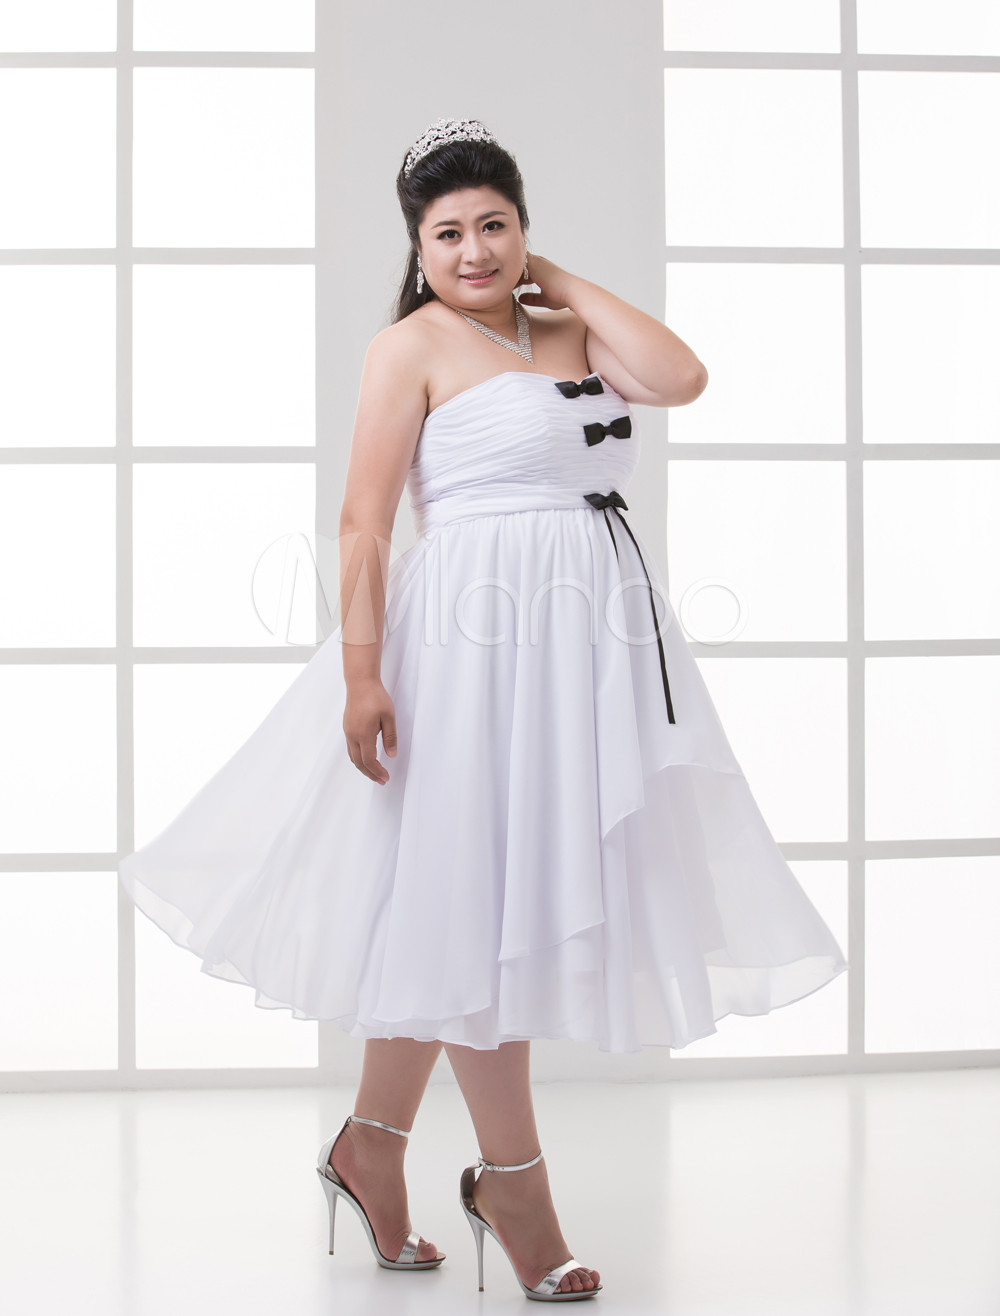 Empire Waist White Chiffon Bow Sweetheart Women's Plus Size Prom Dress plus size dresses, plus size dress,  plus size prom dress, plus size formal dress, plus size formal gown,